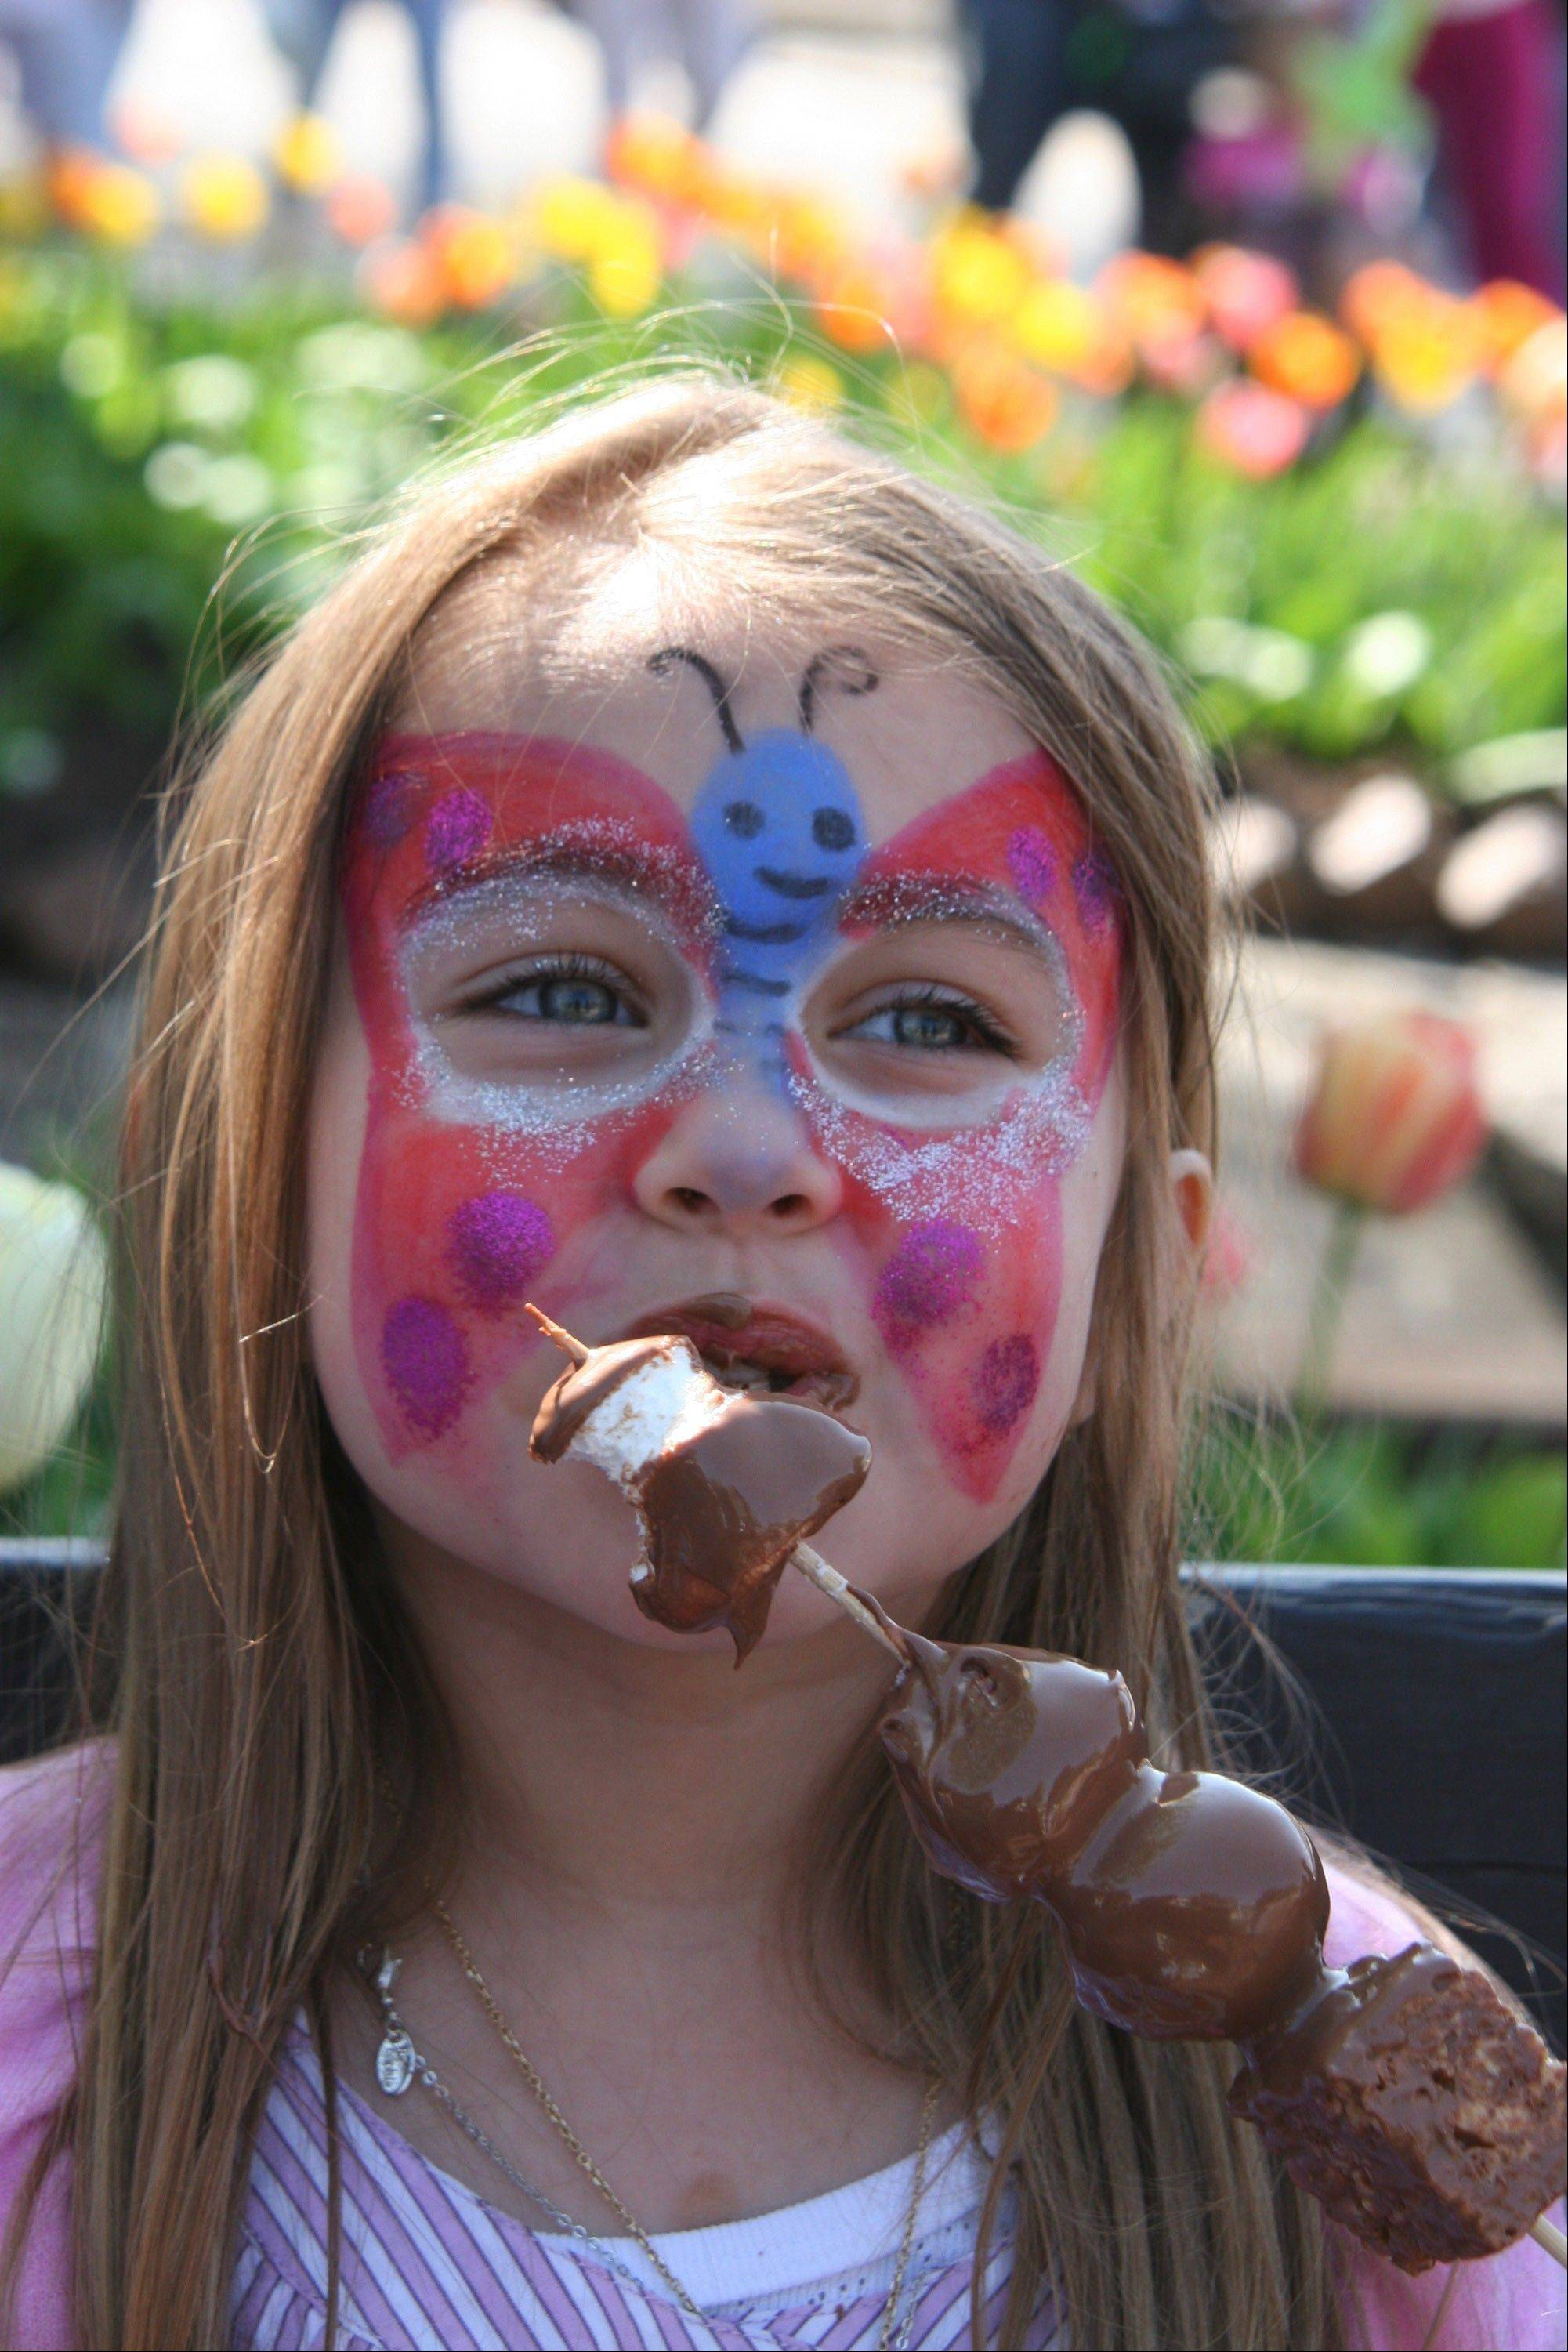 Live music, shopping and lots of chocolate make up the annual Long Grove Chocolate Festival.